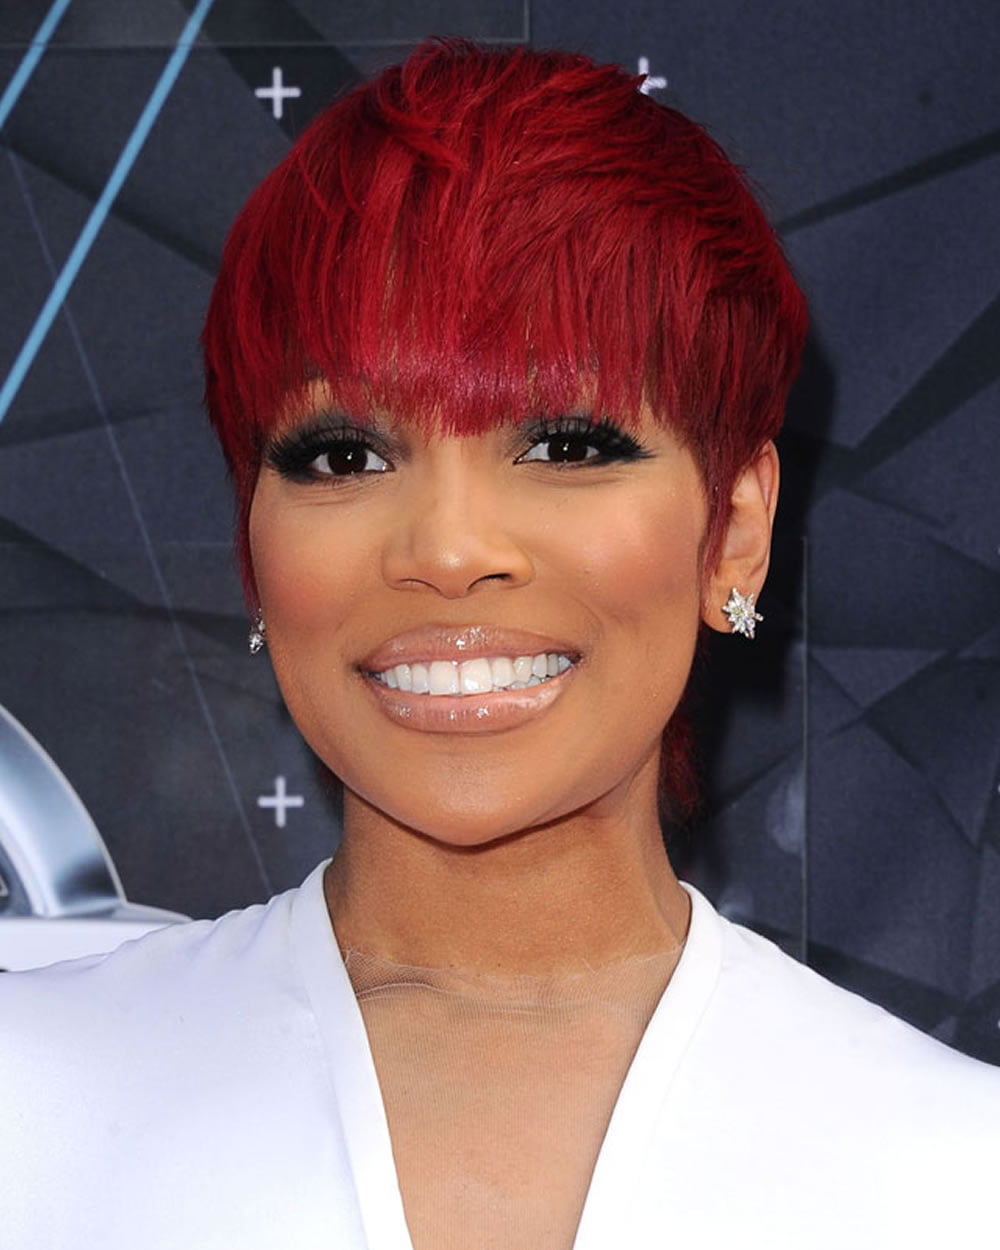 Red Short Hairstyles Black Hrotelrehberii